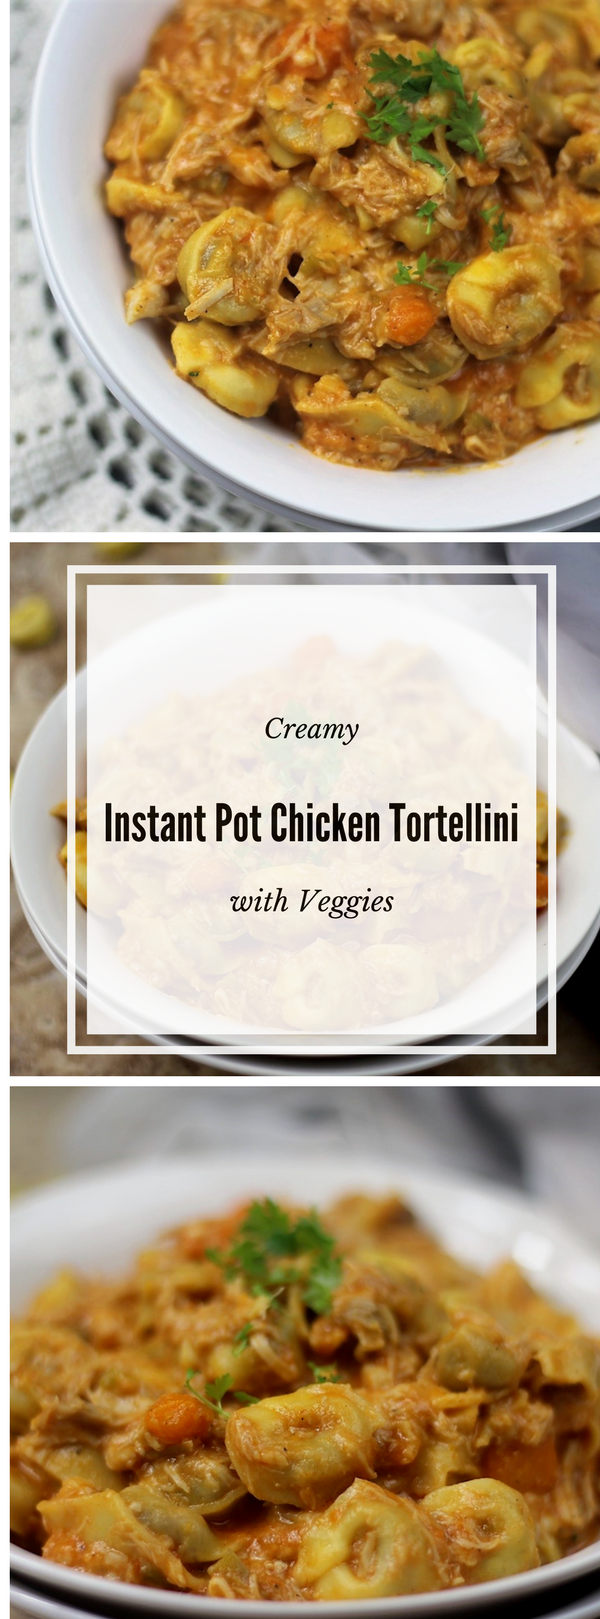 Creamy Instant Pot Chicken Tortellini with Veggies